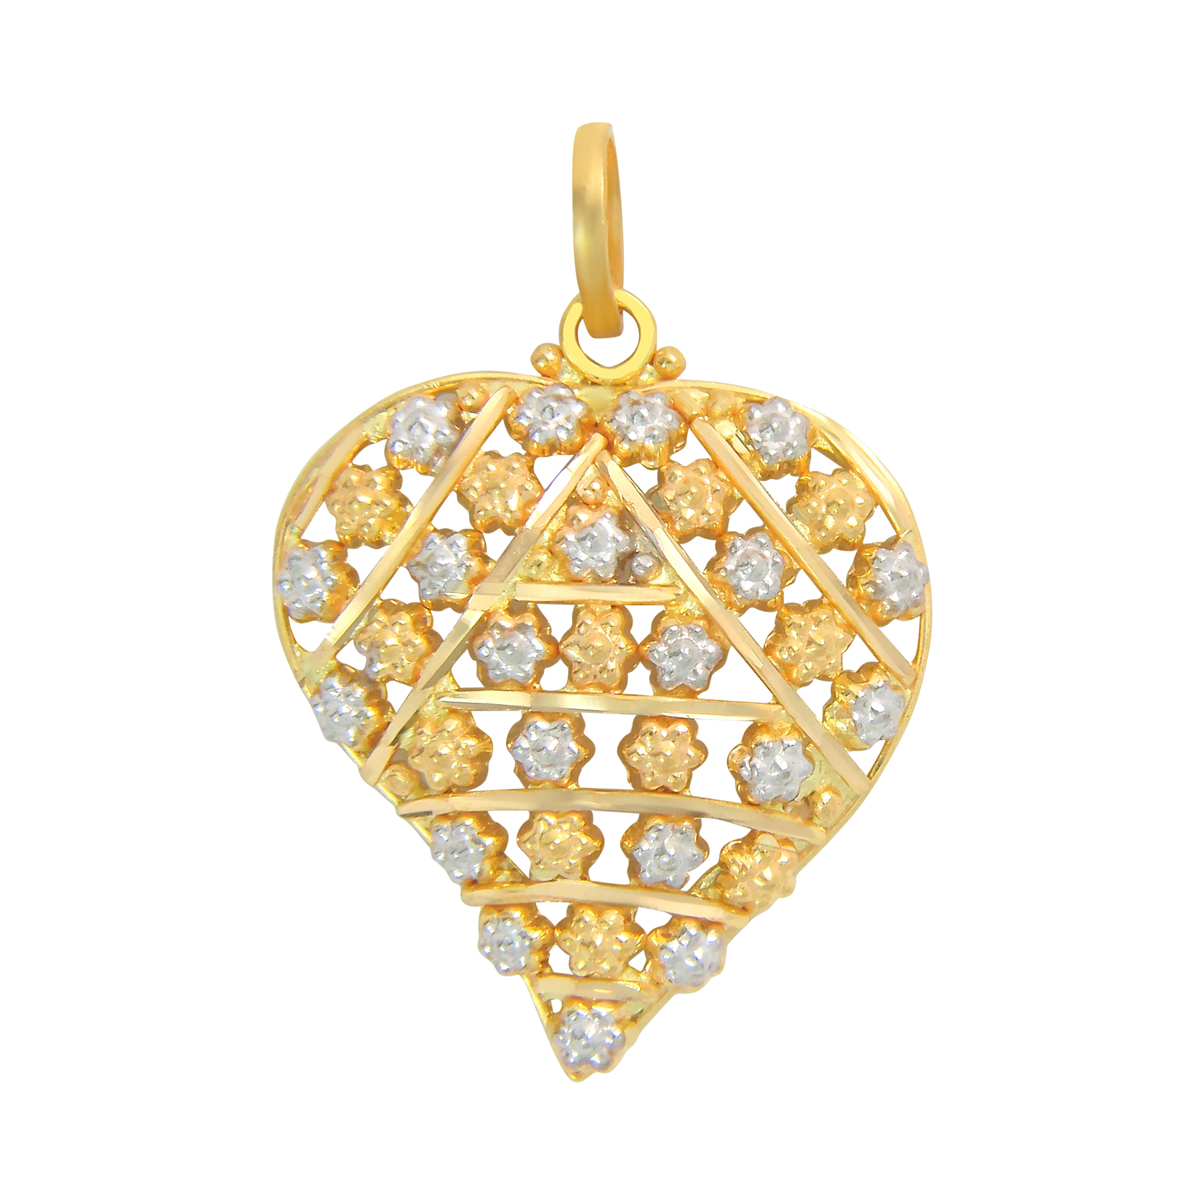 Popley 22Kt Gold Bandhan Pendant - A16